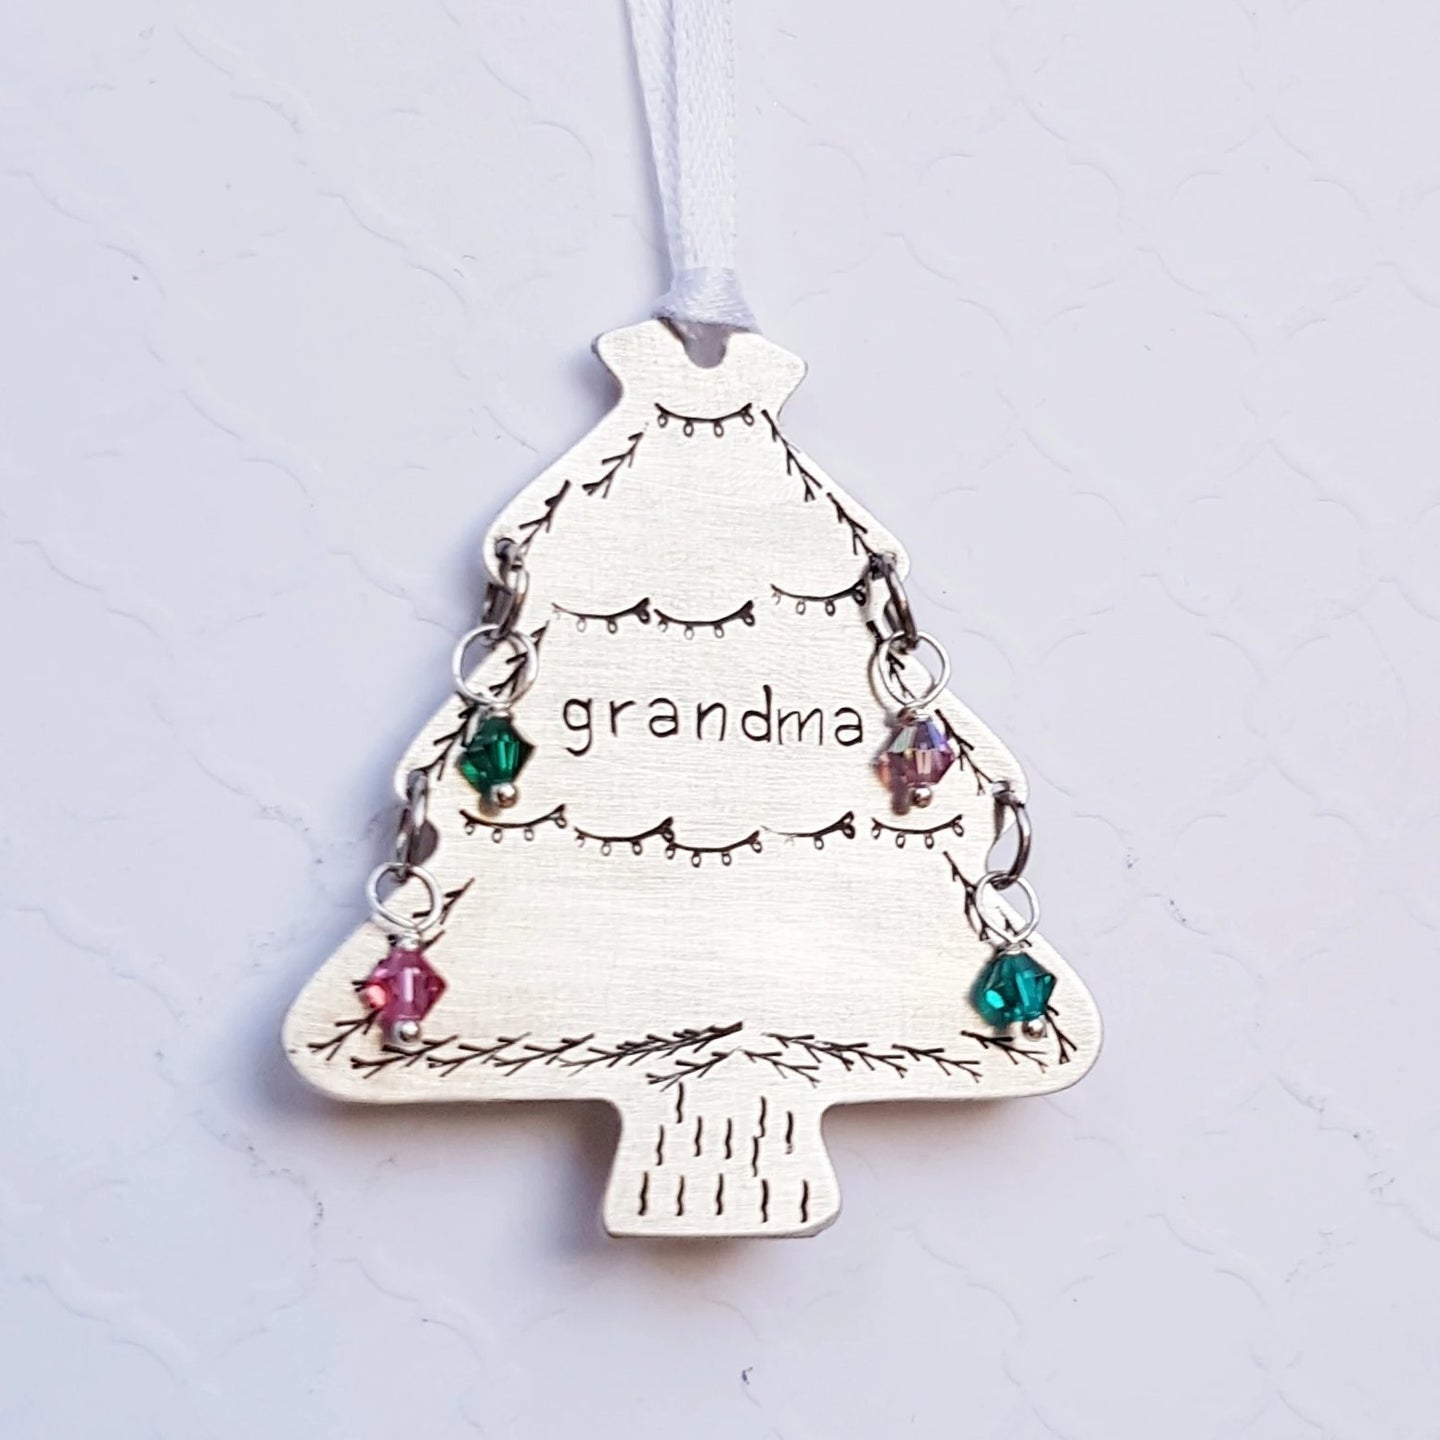 stamped christmas tree ornament for grandma with grandchildren's birthstones